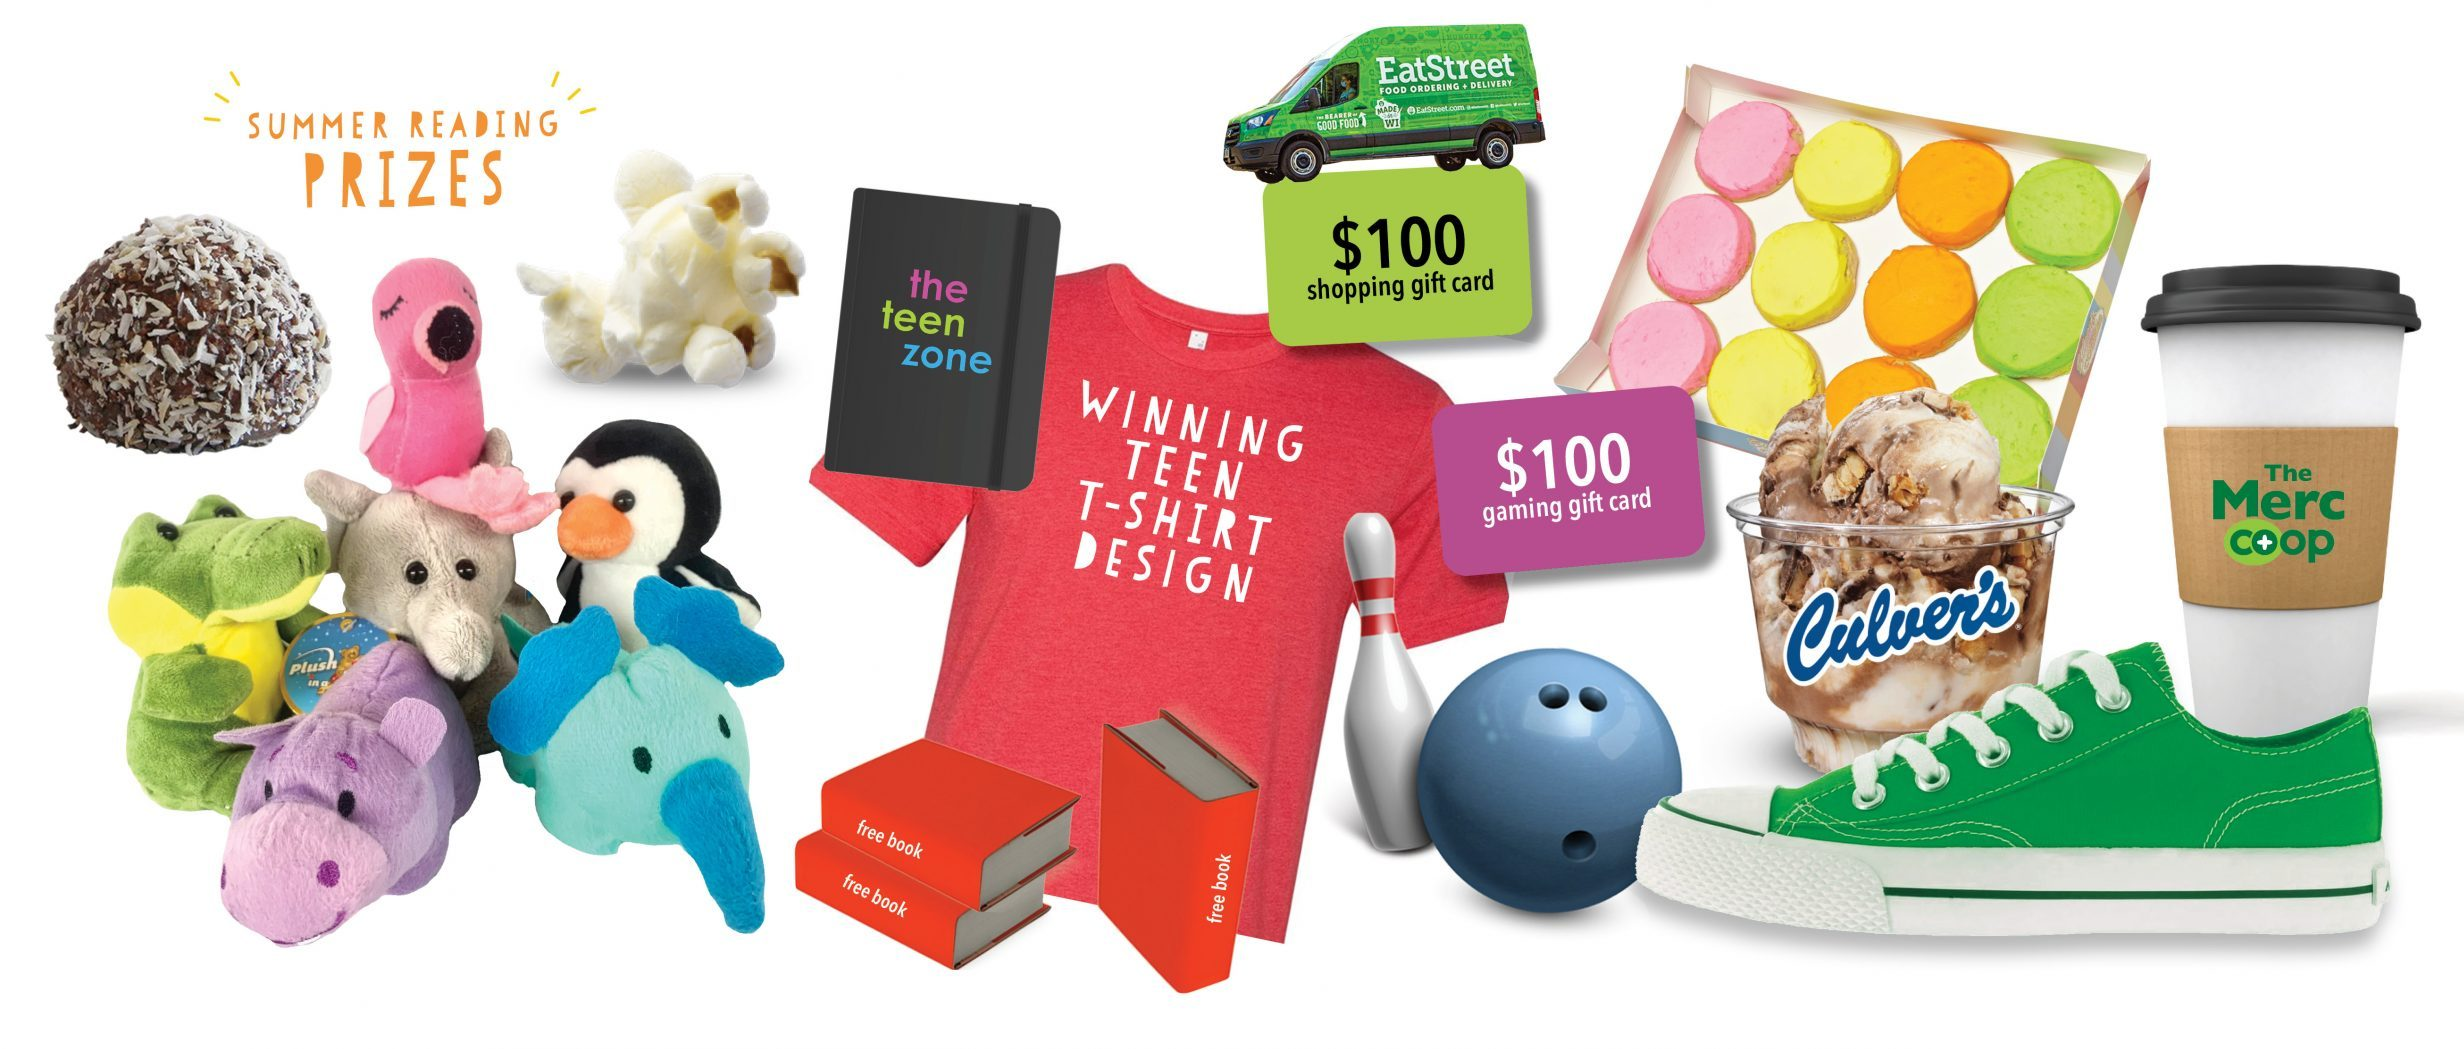 2021 Summer Reading prizes splash